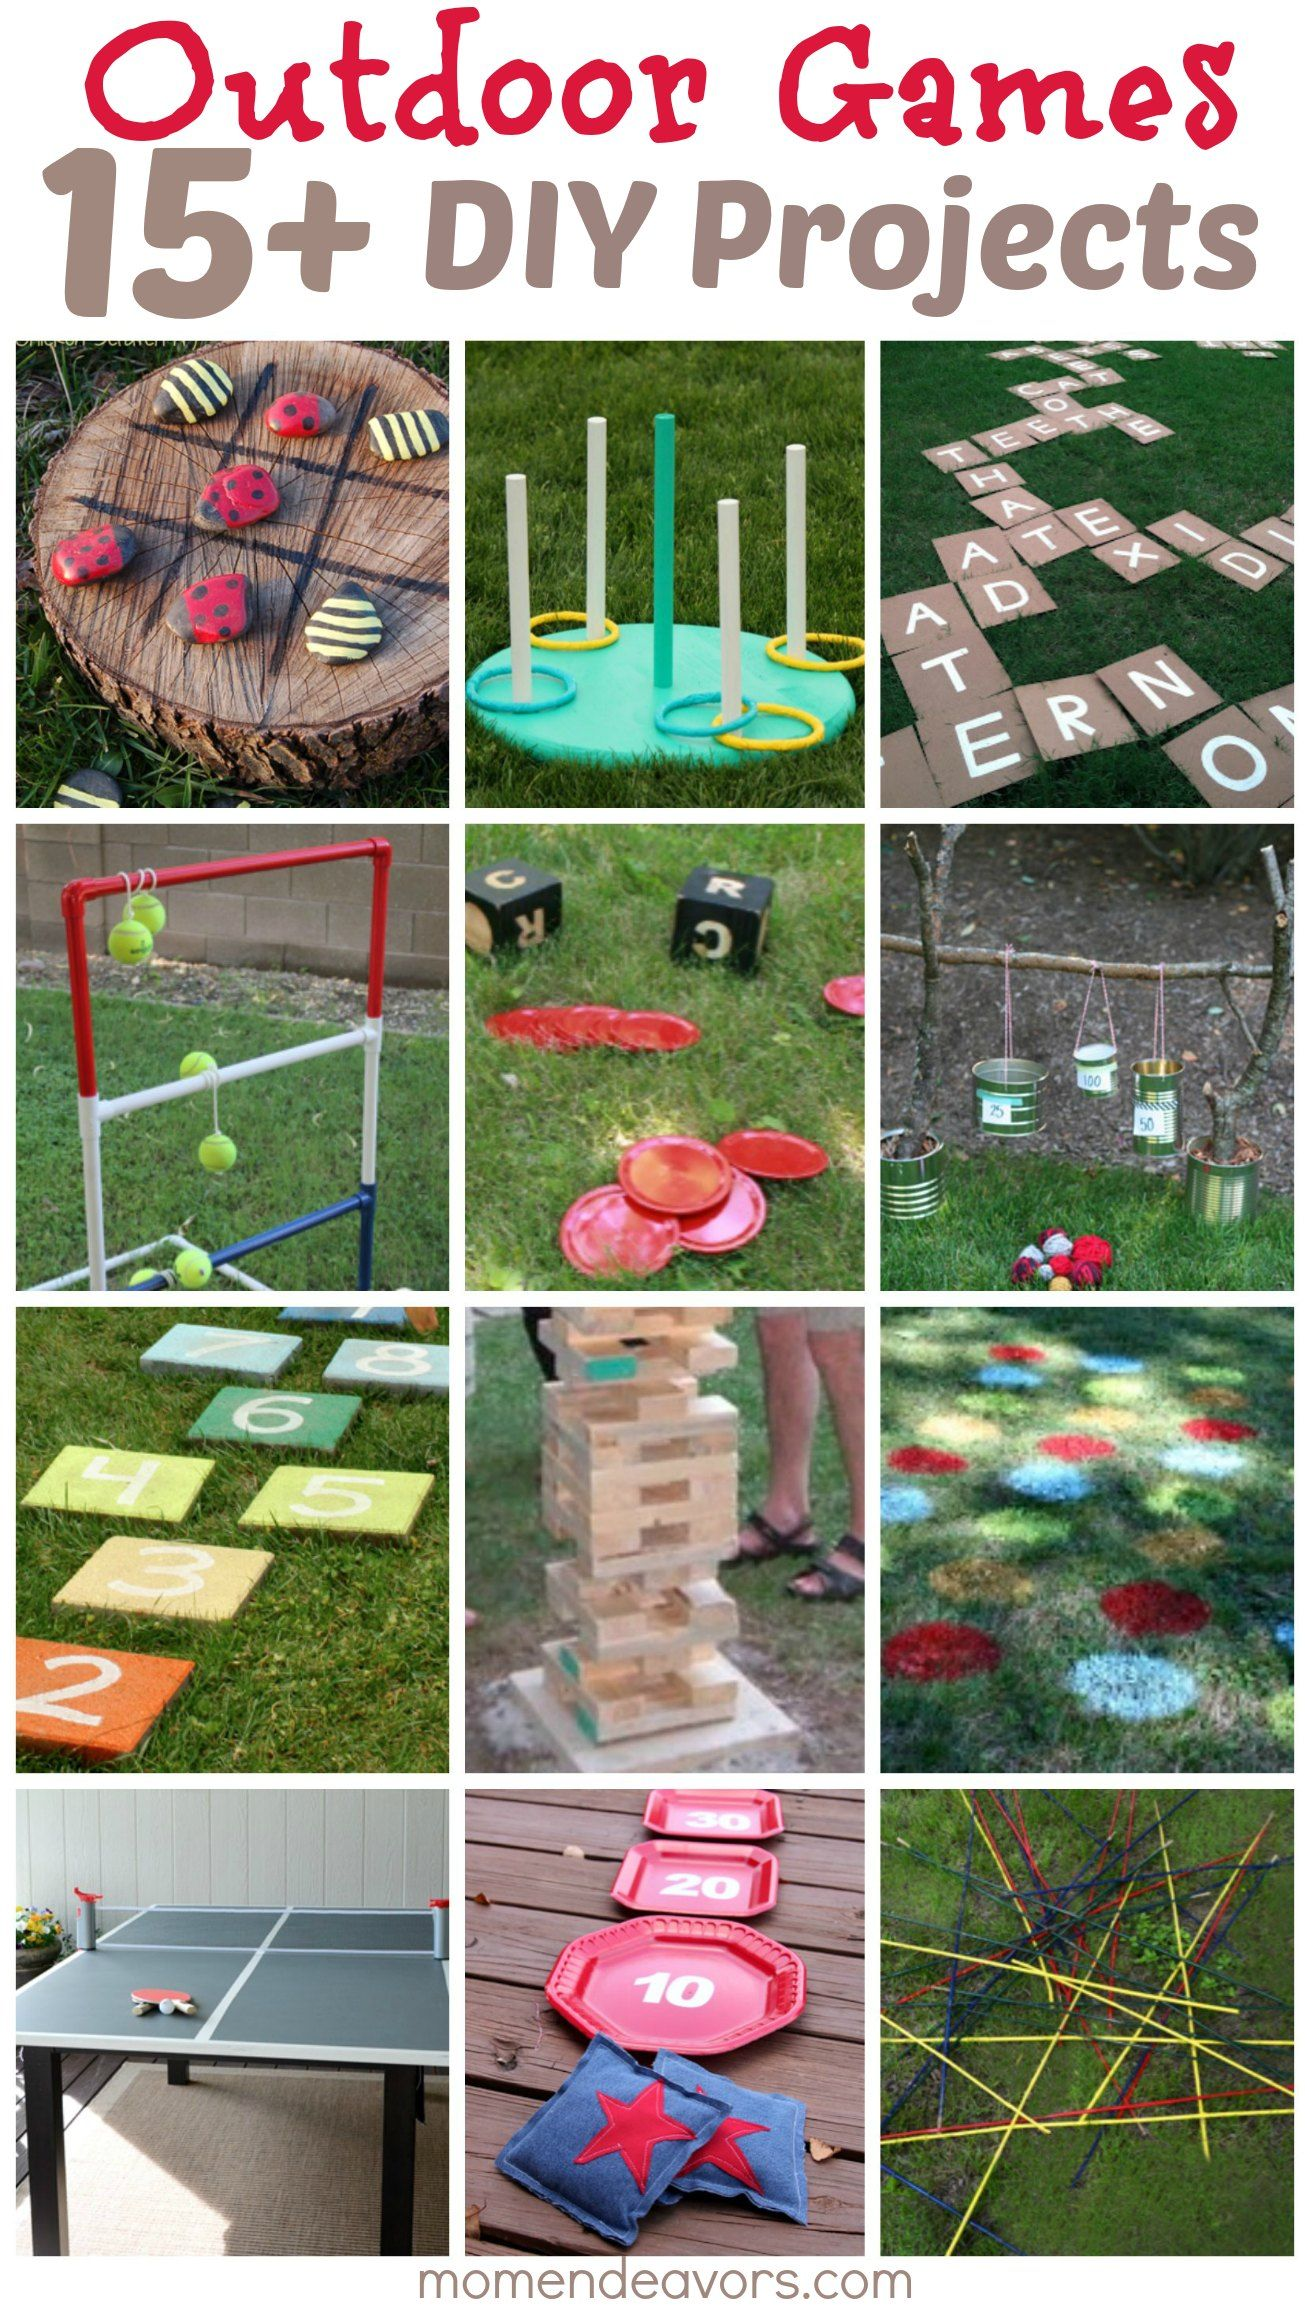 DIY Outdoor Games 15 Awesome Project Ideas for Backyard Fun